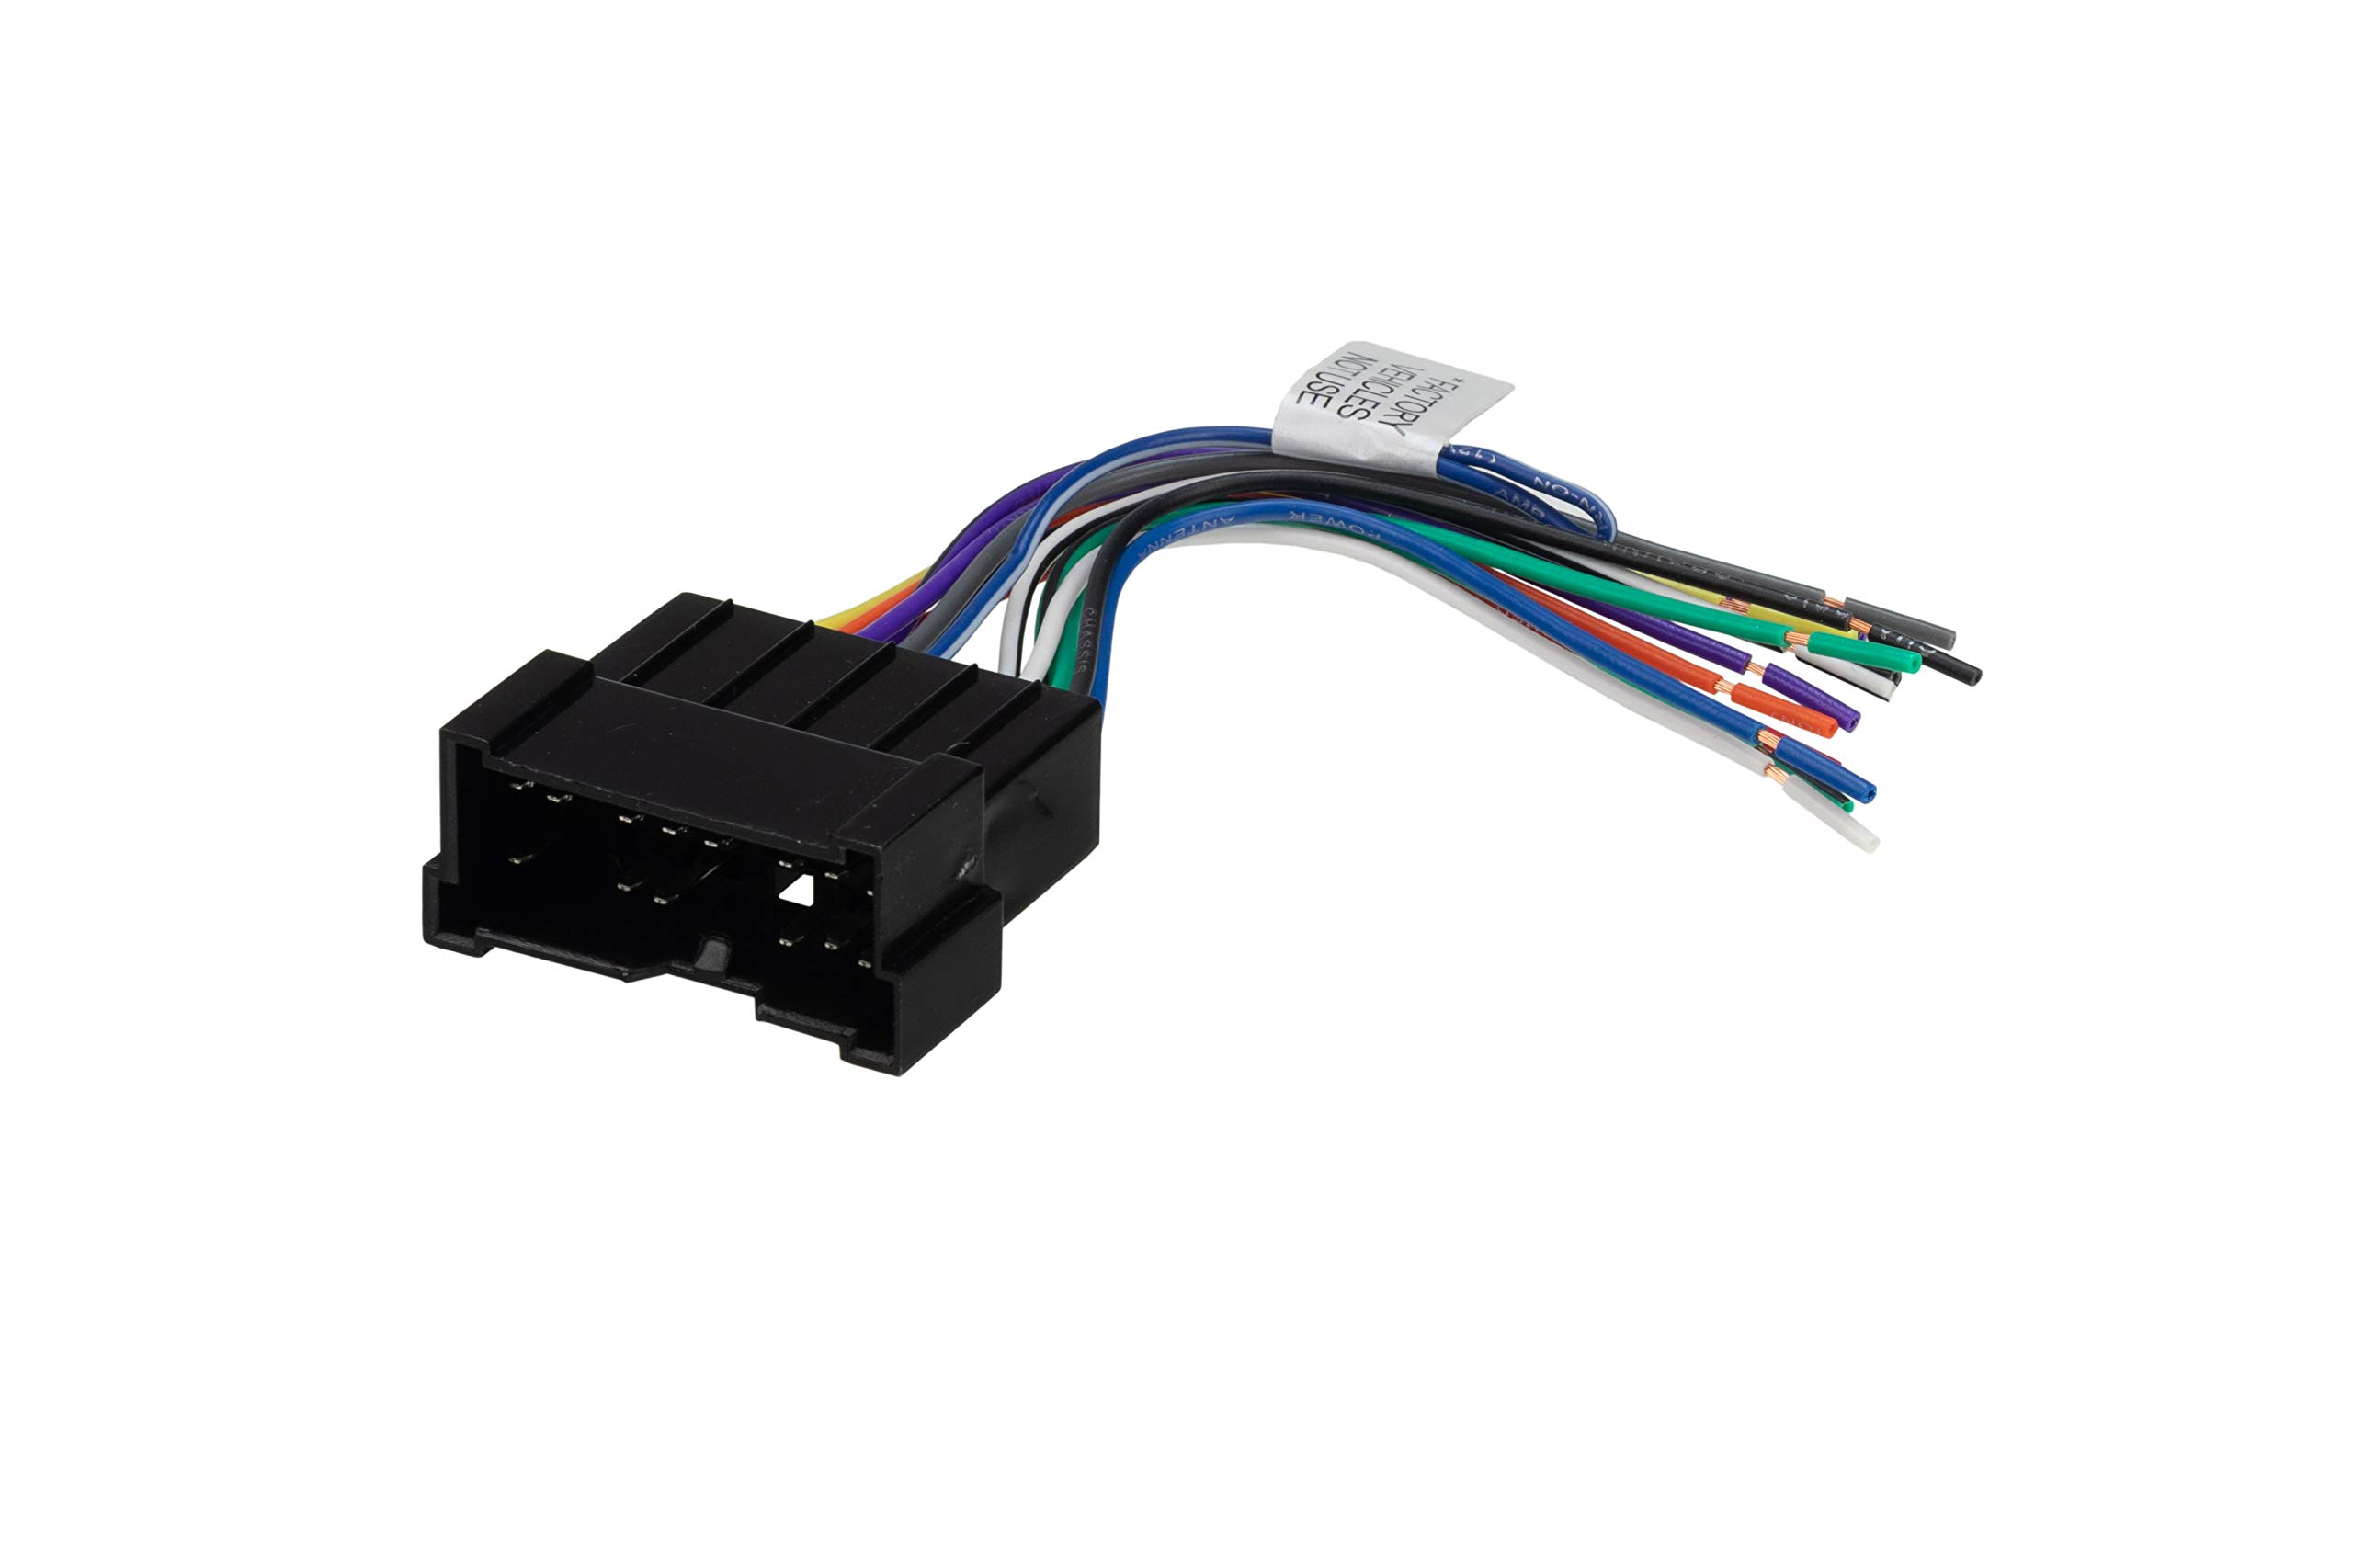 Amazon.com: Scosche HY03B Compatible with Select 2000-06 Hyundai  Power/Speaker Connector/Wire Harness for Aftermarket Stereo Installation  with Color Coded Wires: Car ElectronicsAmazon.com